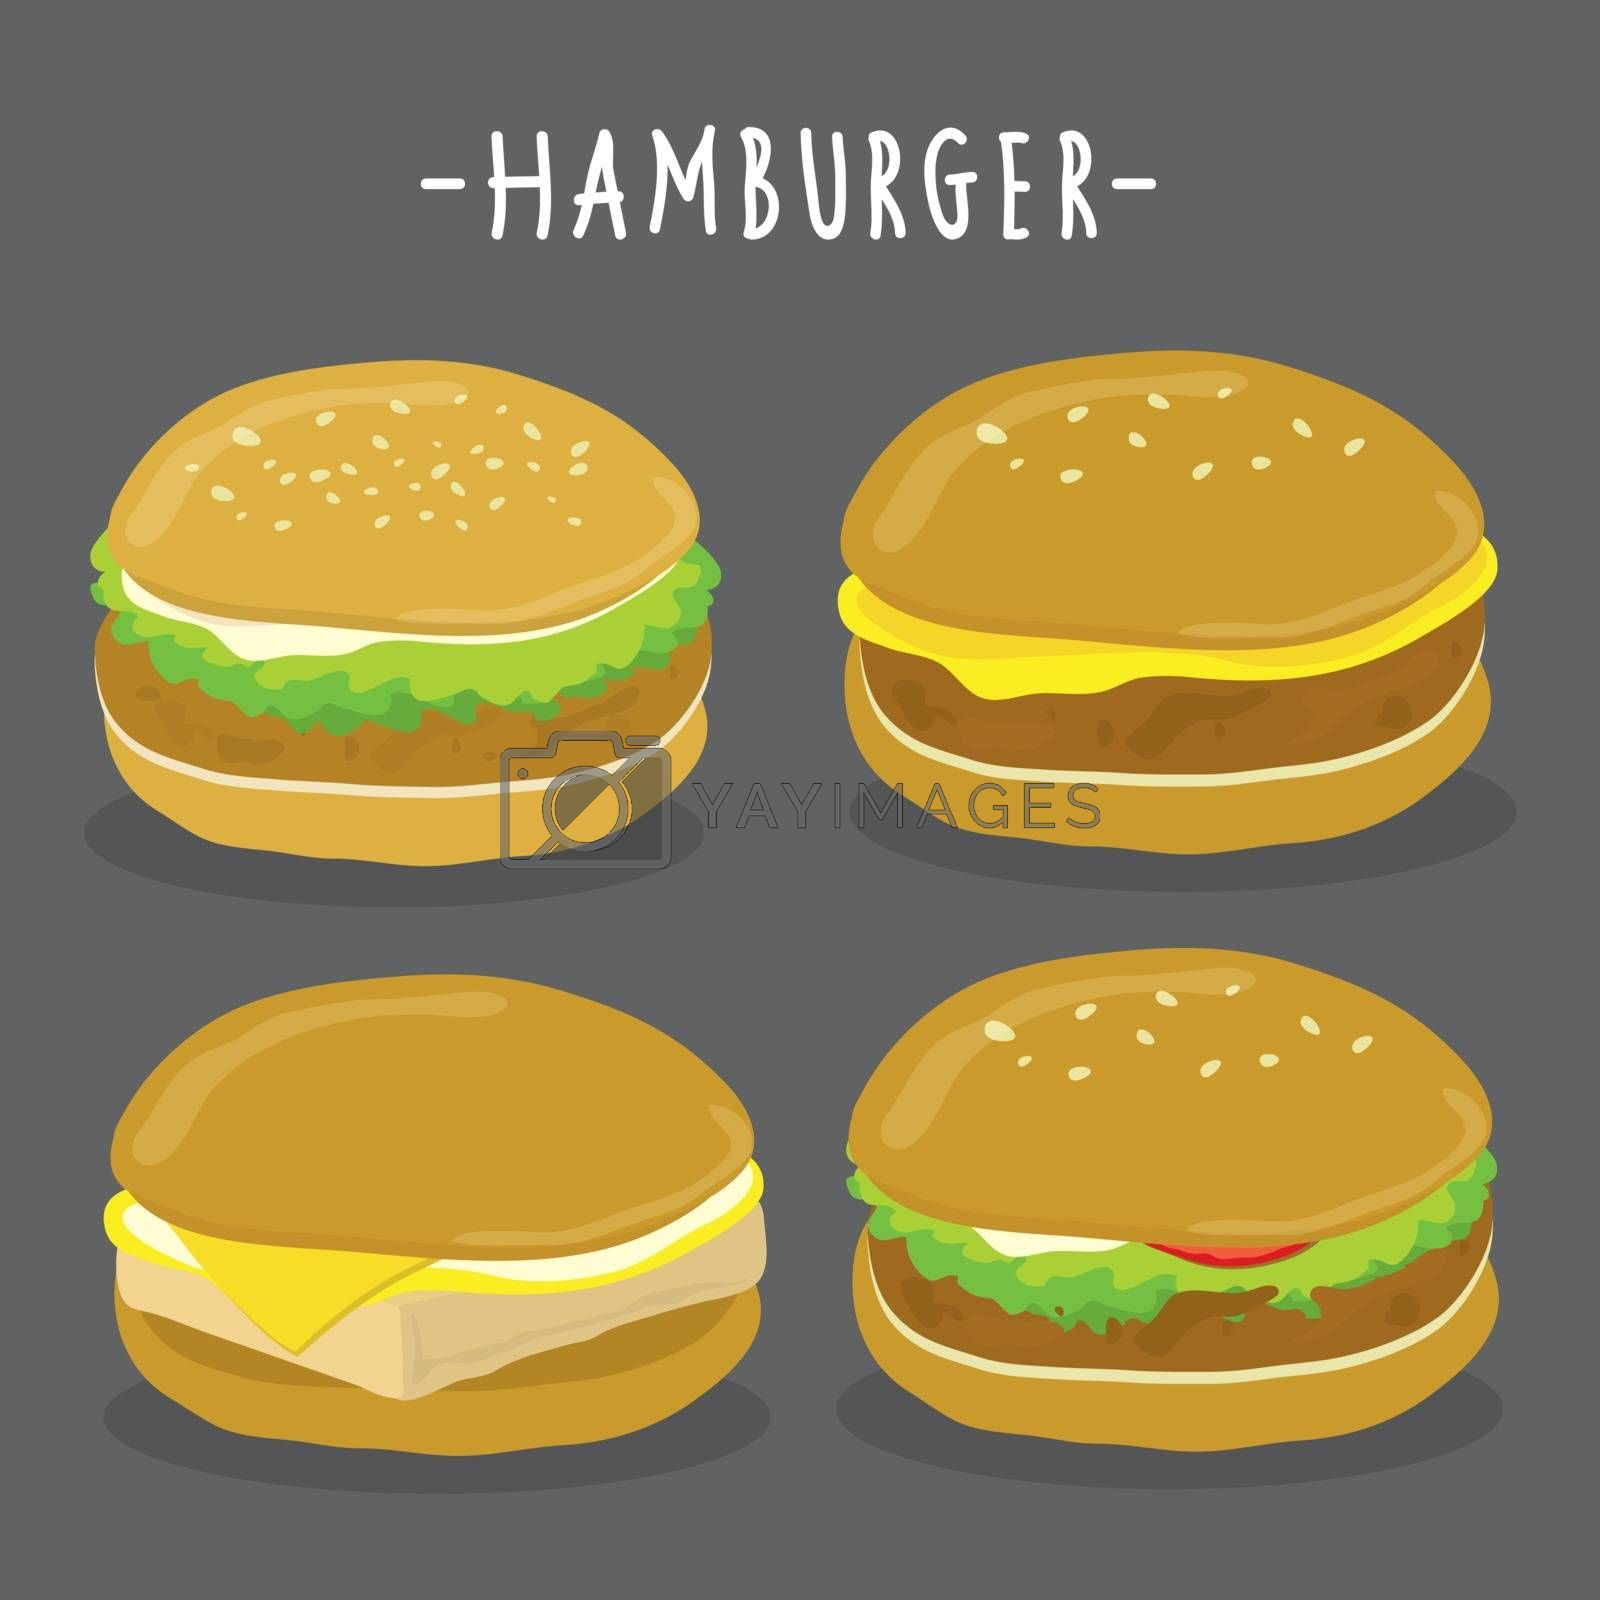 Royalty free image of Set of Hamburger and Cheeseburger American food Vector by Ienjoyeverytime